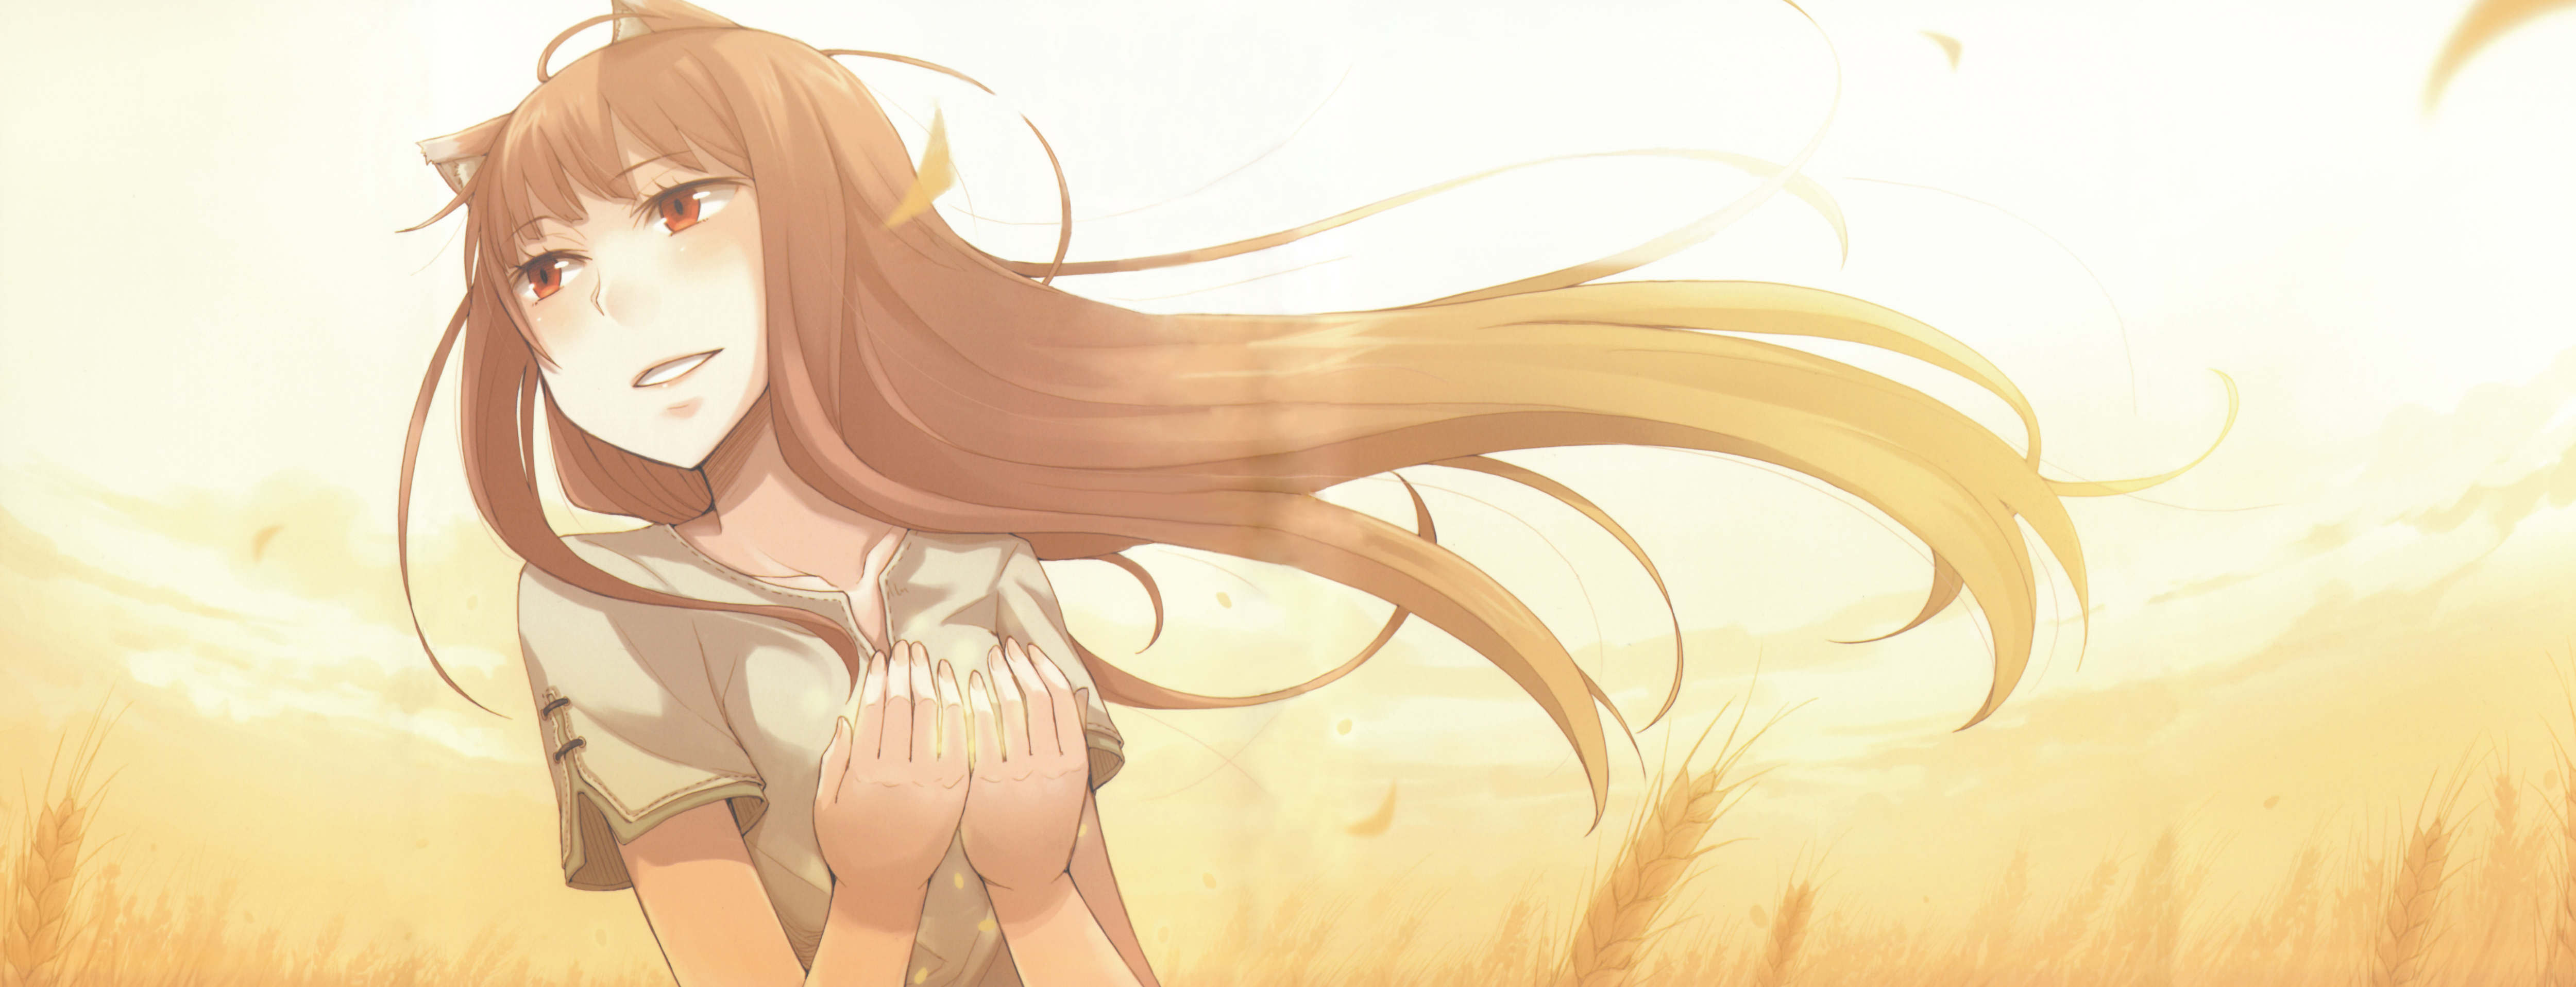 Holo in Spice and Wolf HD desktop wallpaper Widescreen High